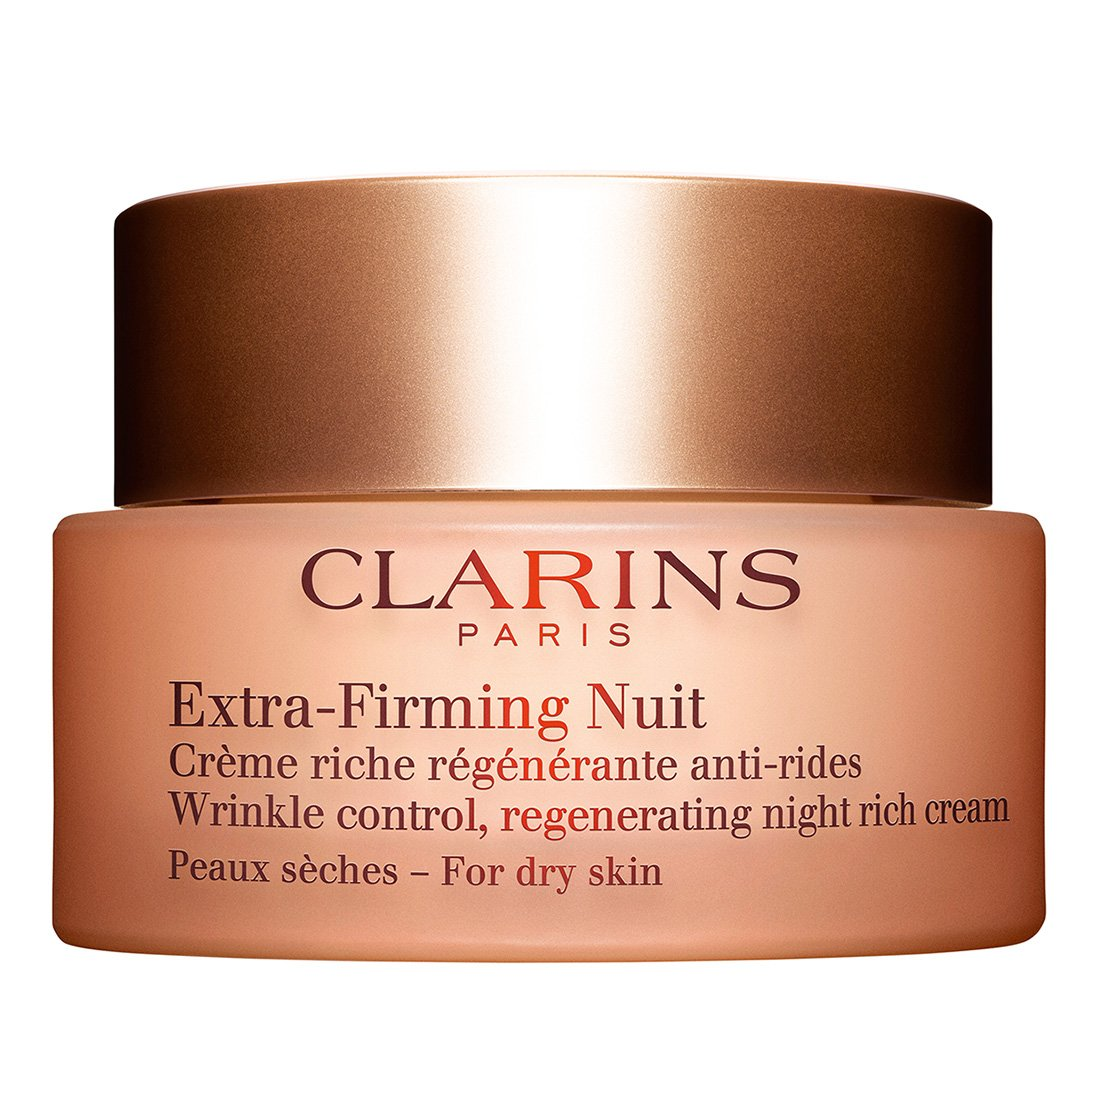 Extra-Firming Nuit Peaux Sèches - CLARINS